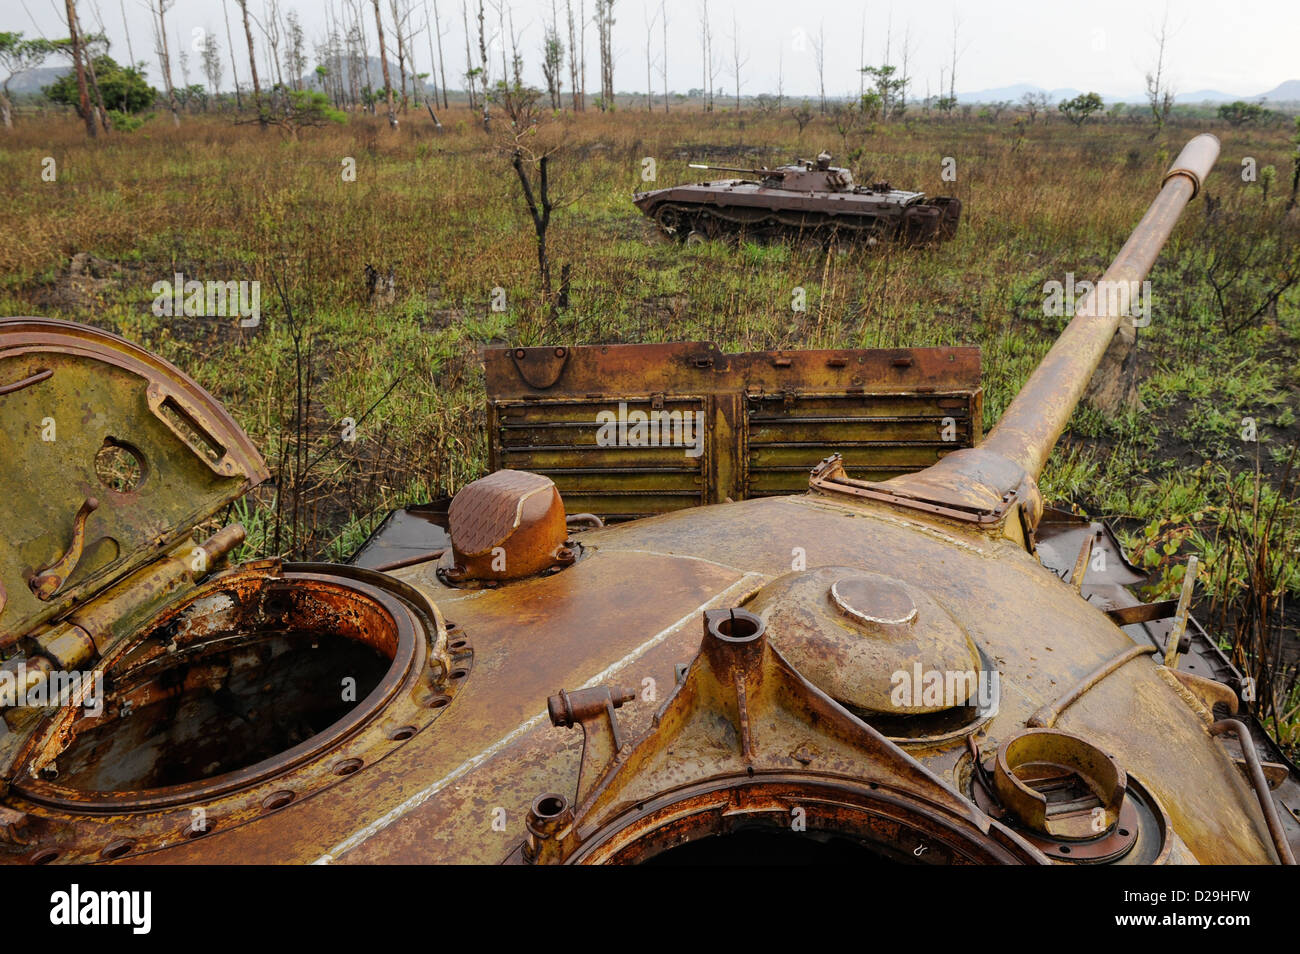 Africa ANGOLA old soviet tank from civil war between MPLA and UNITA near Quibala, some areas have still land mines - Stock Image